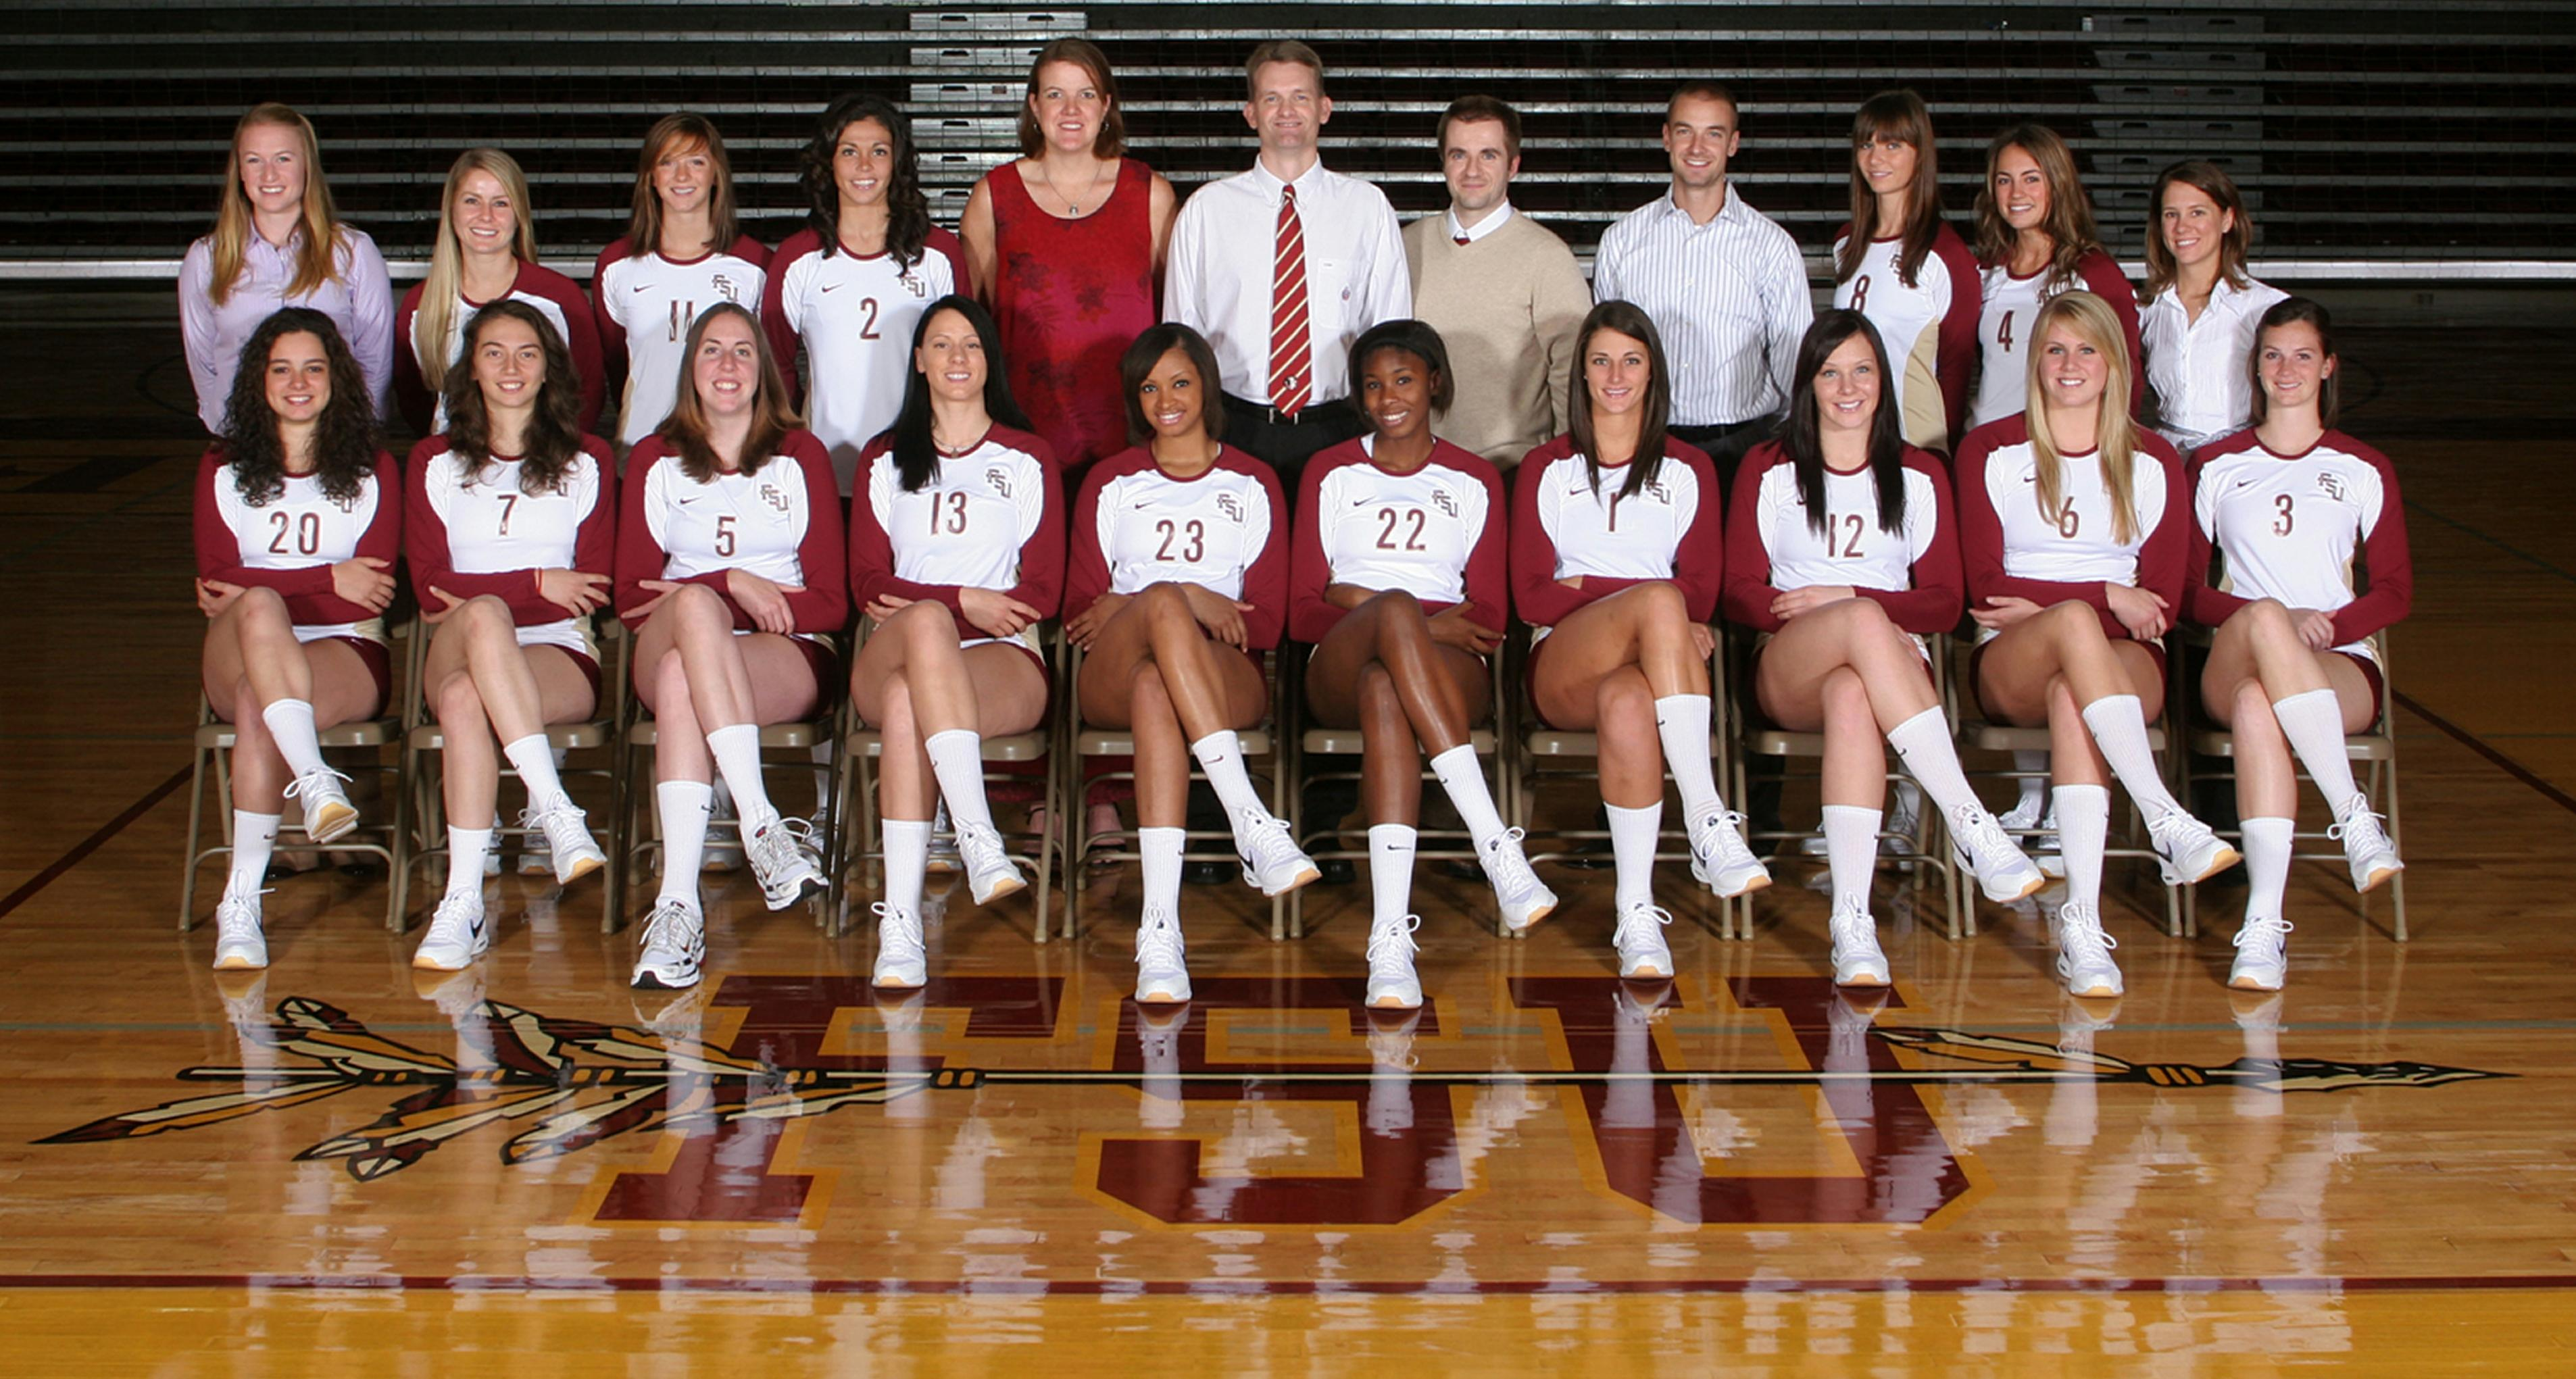 2009 Fsu Women S Volleyball Team